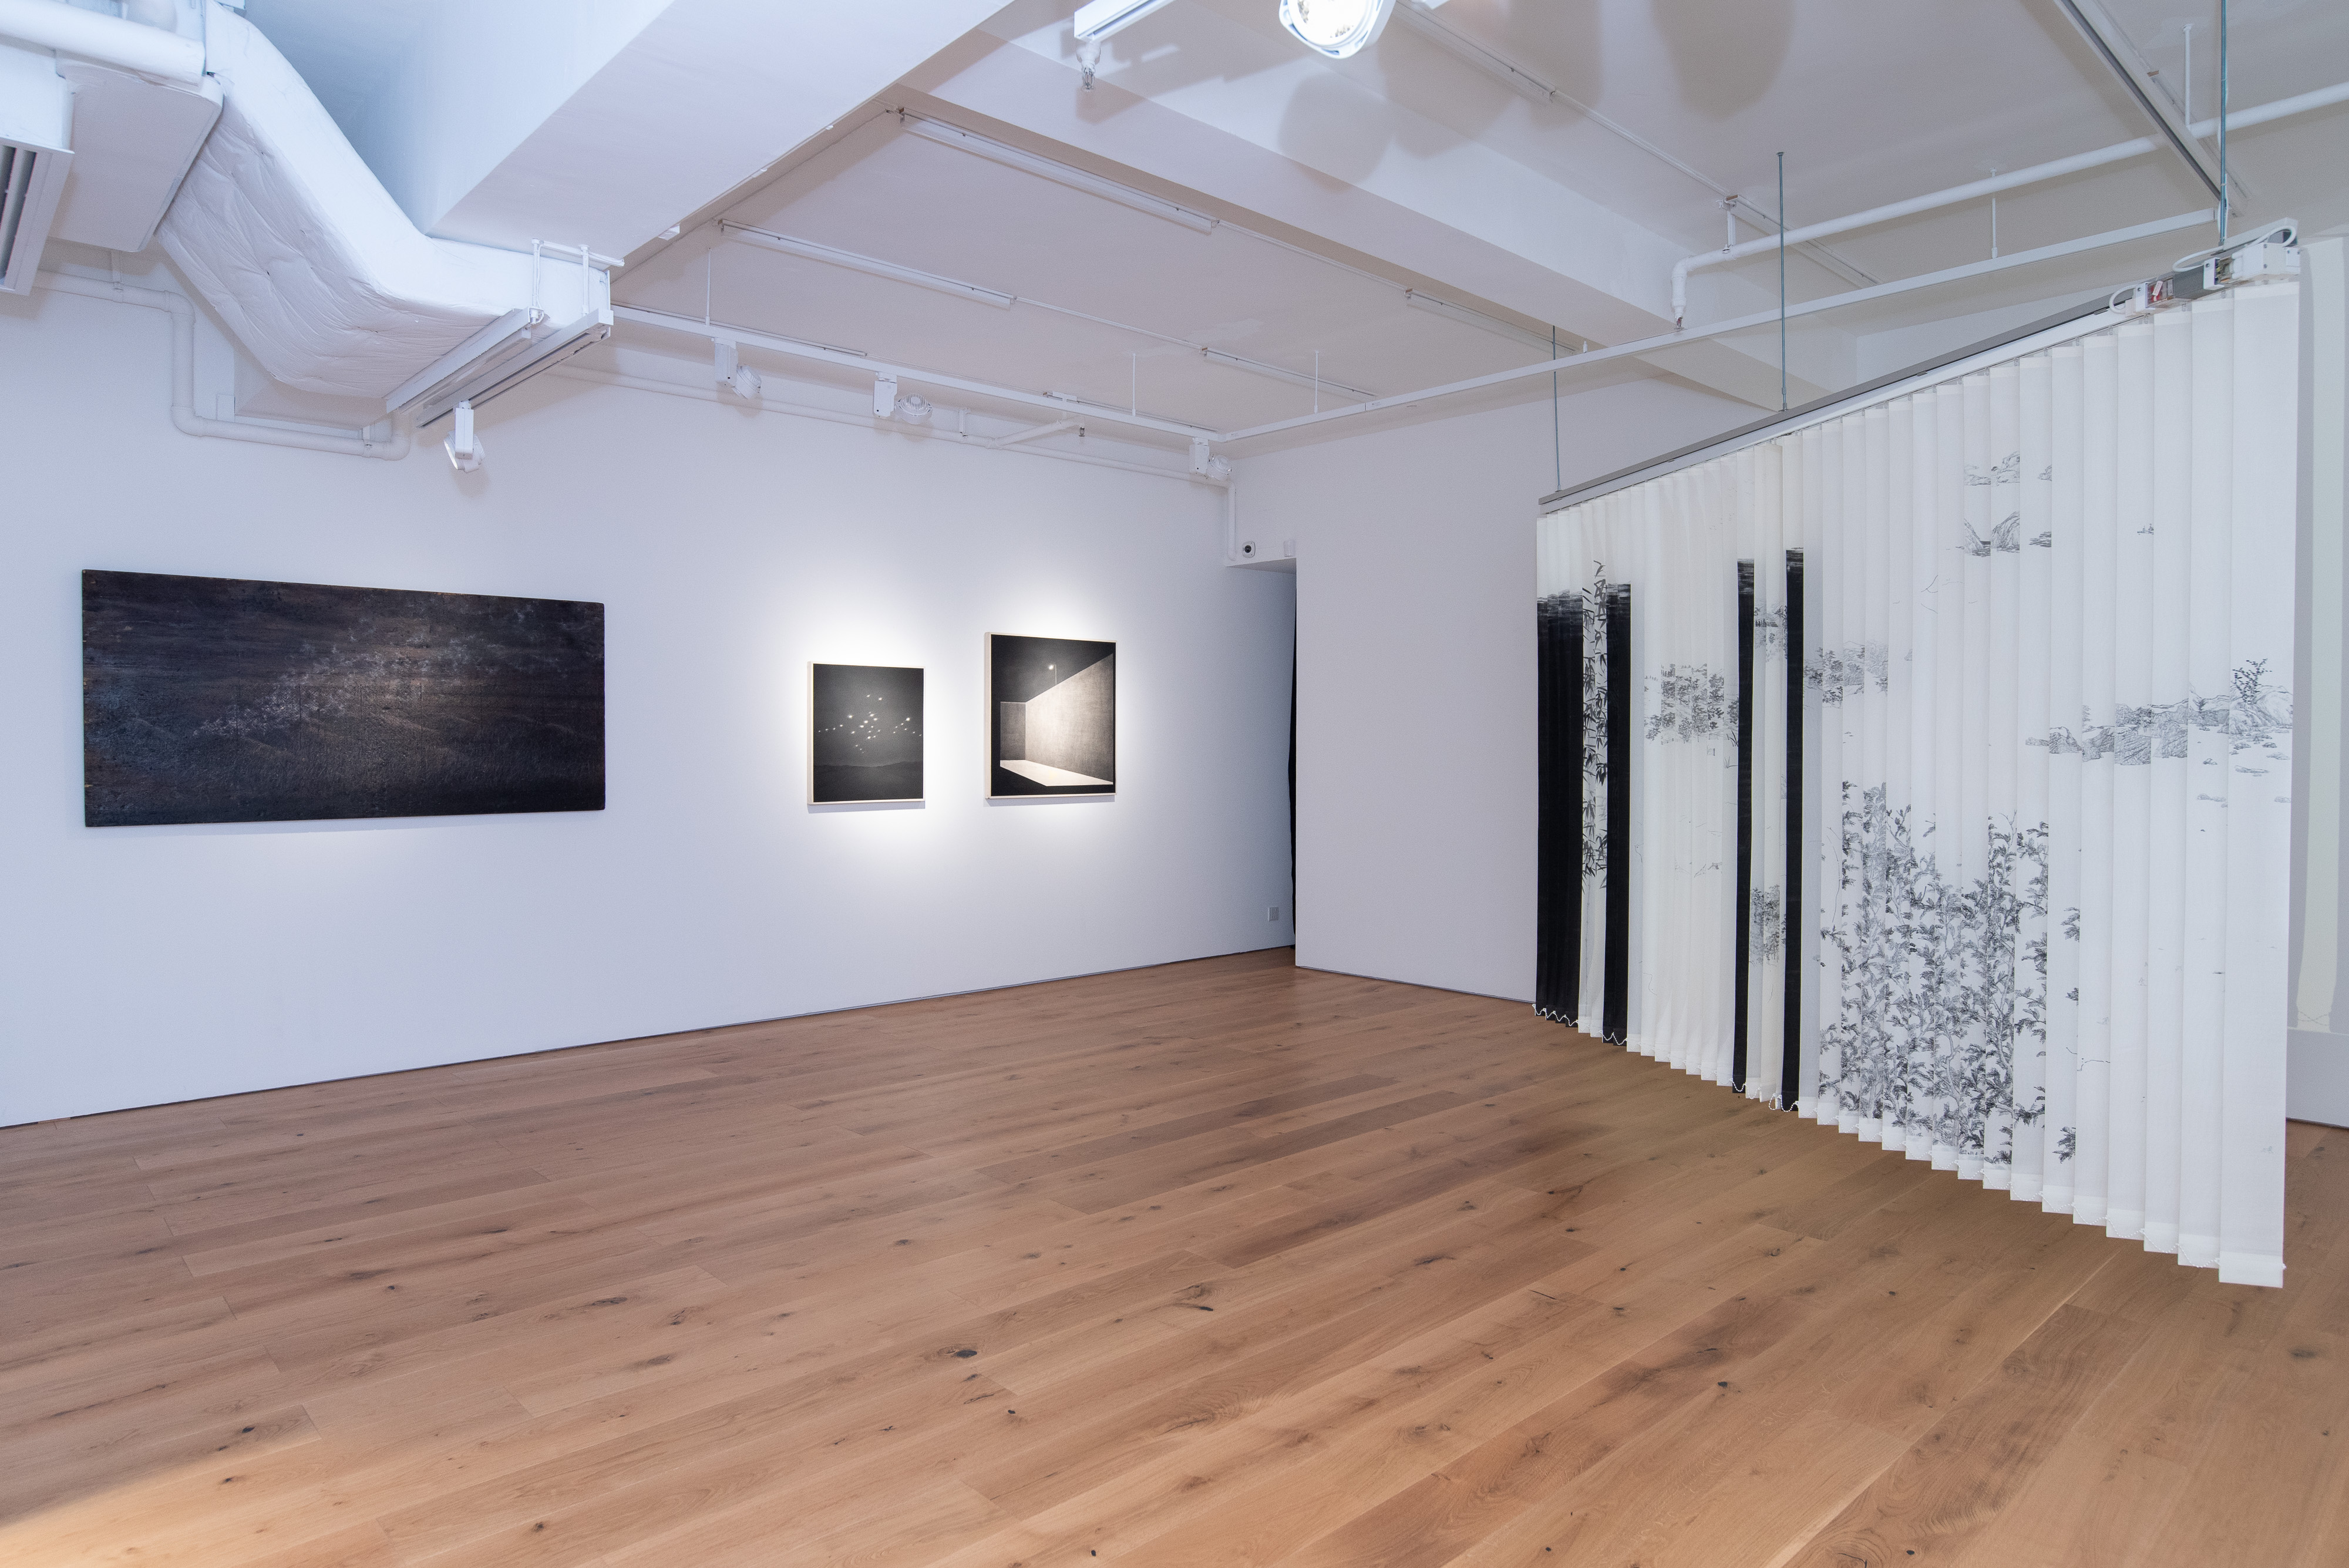 Group Exhibition - Shining Moment